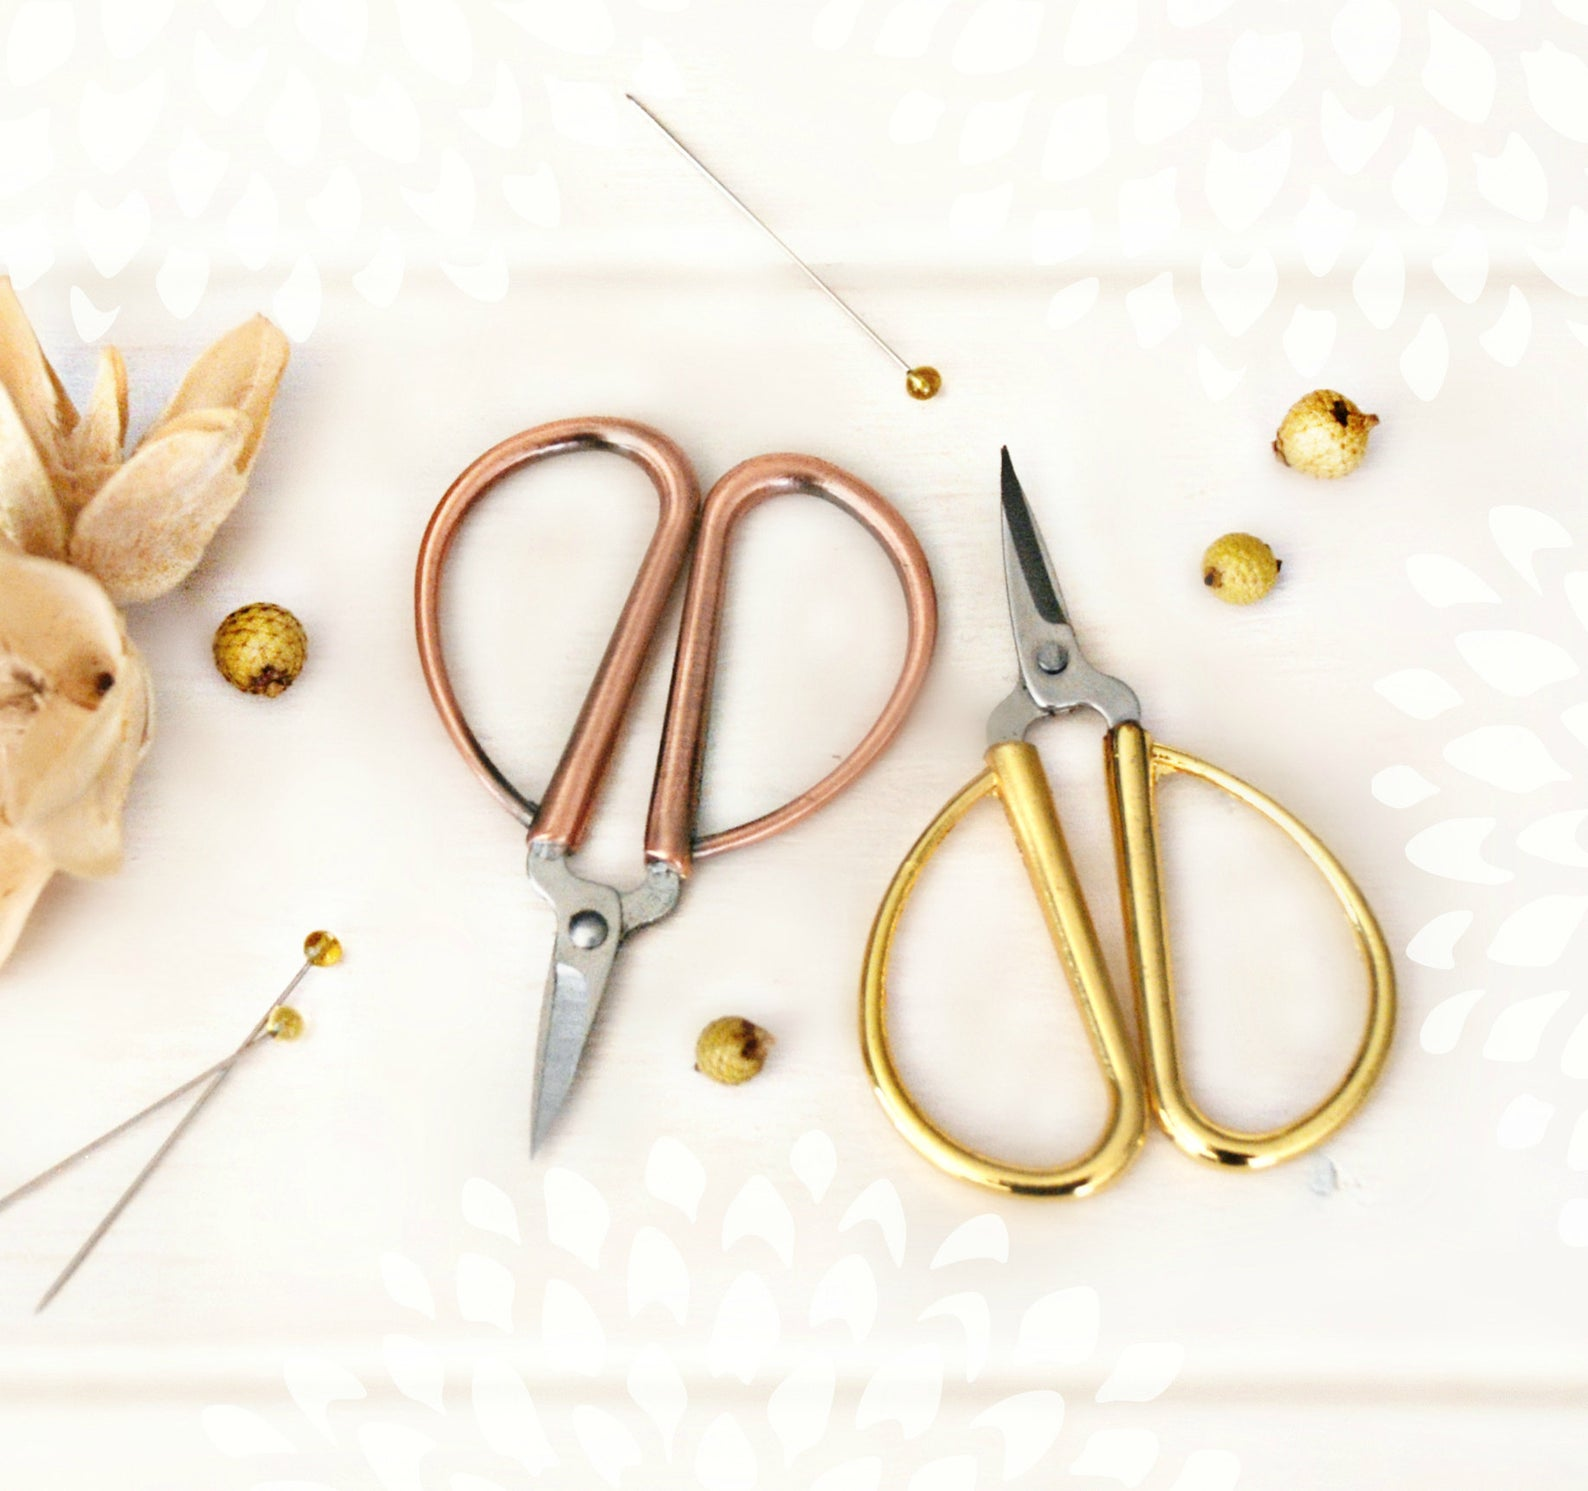 minimalist rose gold embroidery scissors